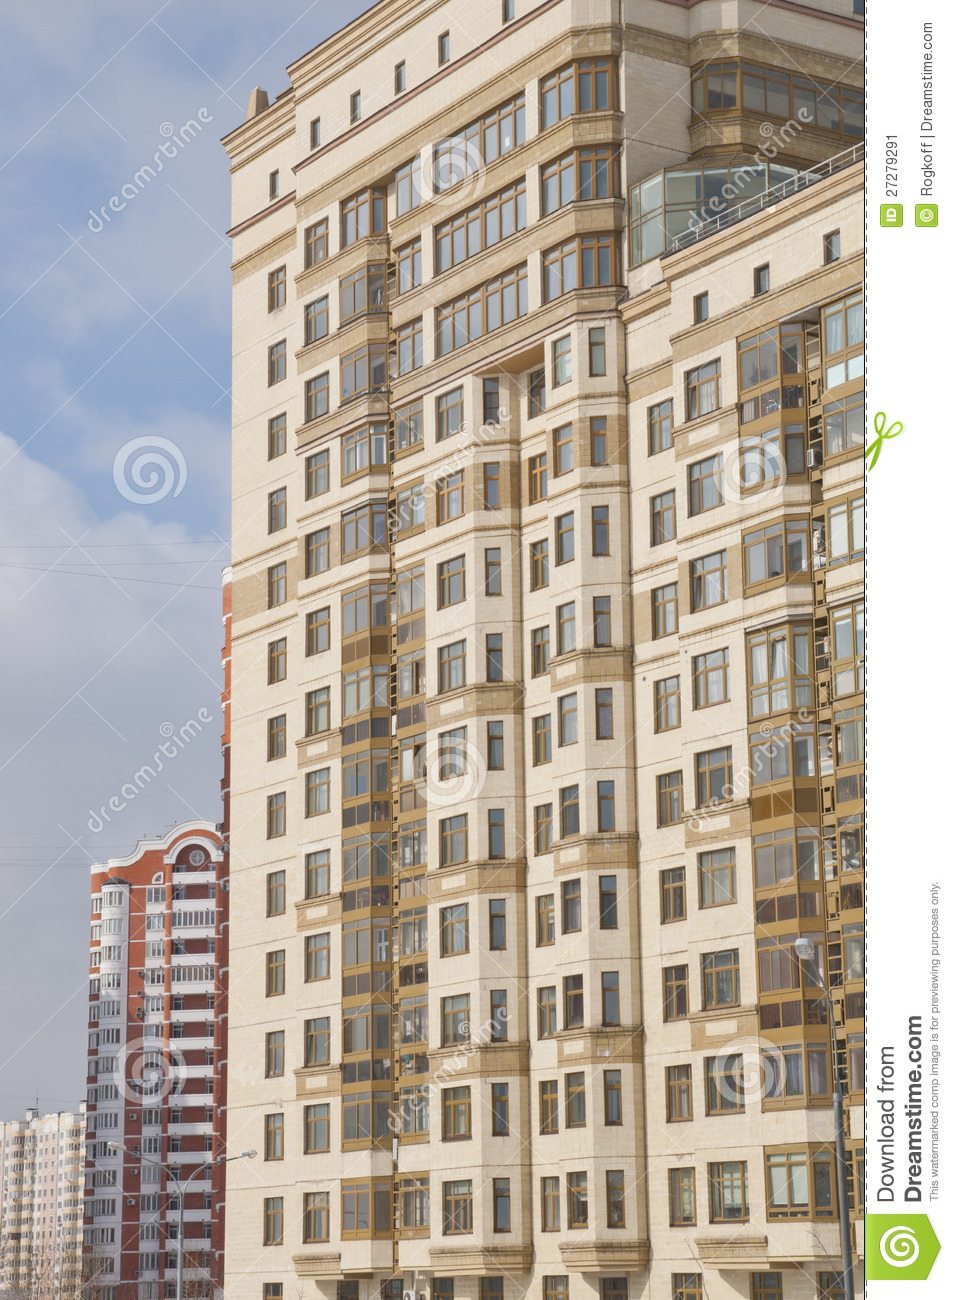 Les maisons resedental de fa ade image stock image 27279291 - Achat appartement amsterdam ...